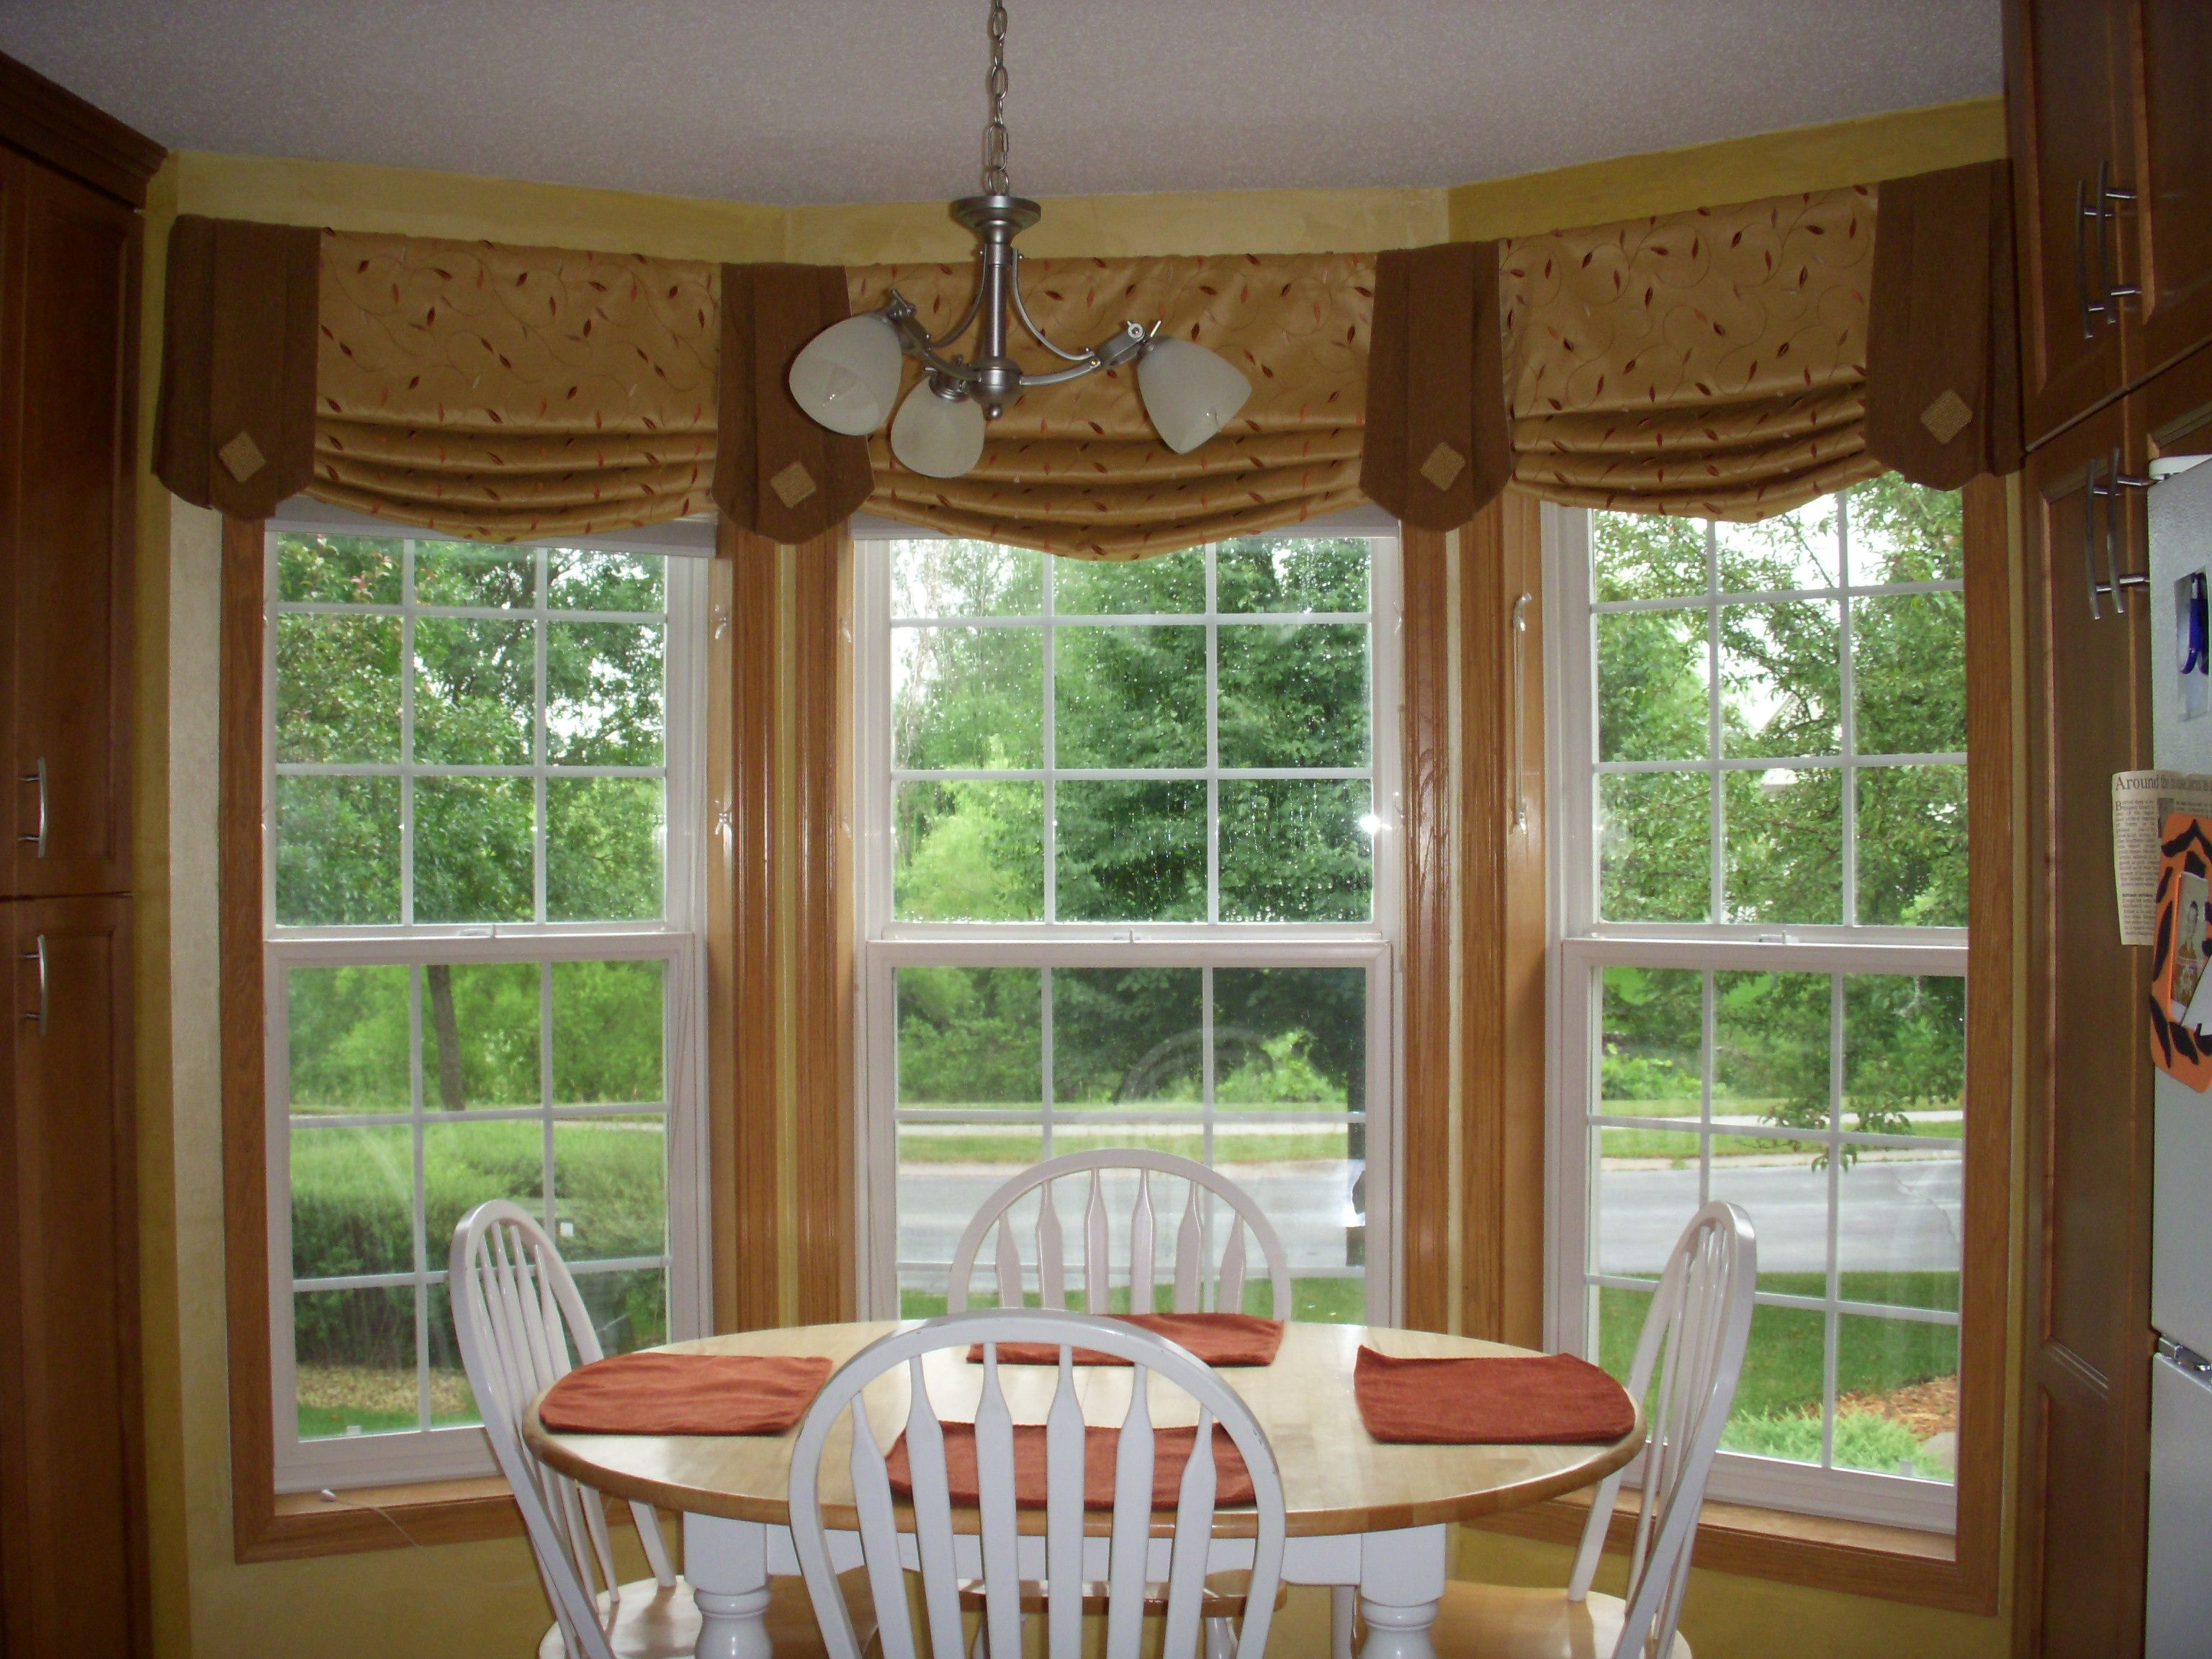 Bay Window Decorating Ideas Interior Design Covering Windows No Problem For The Professional Curtain